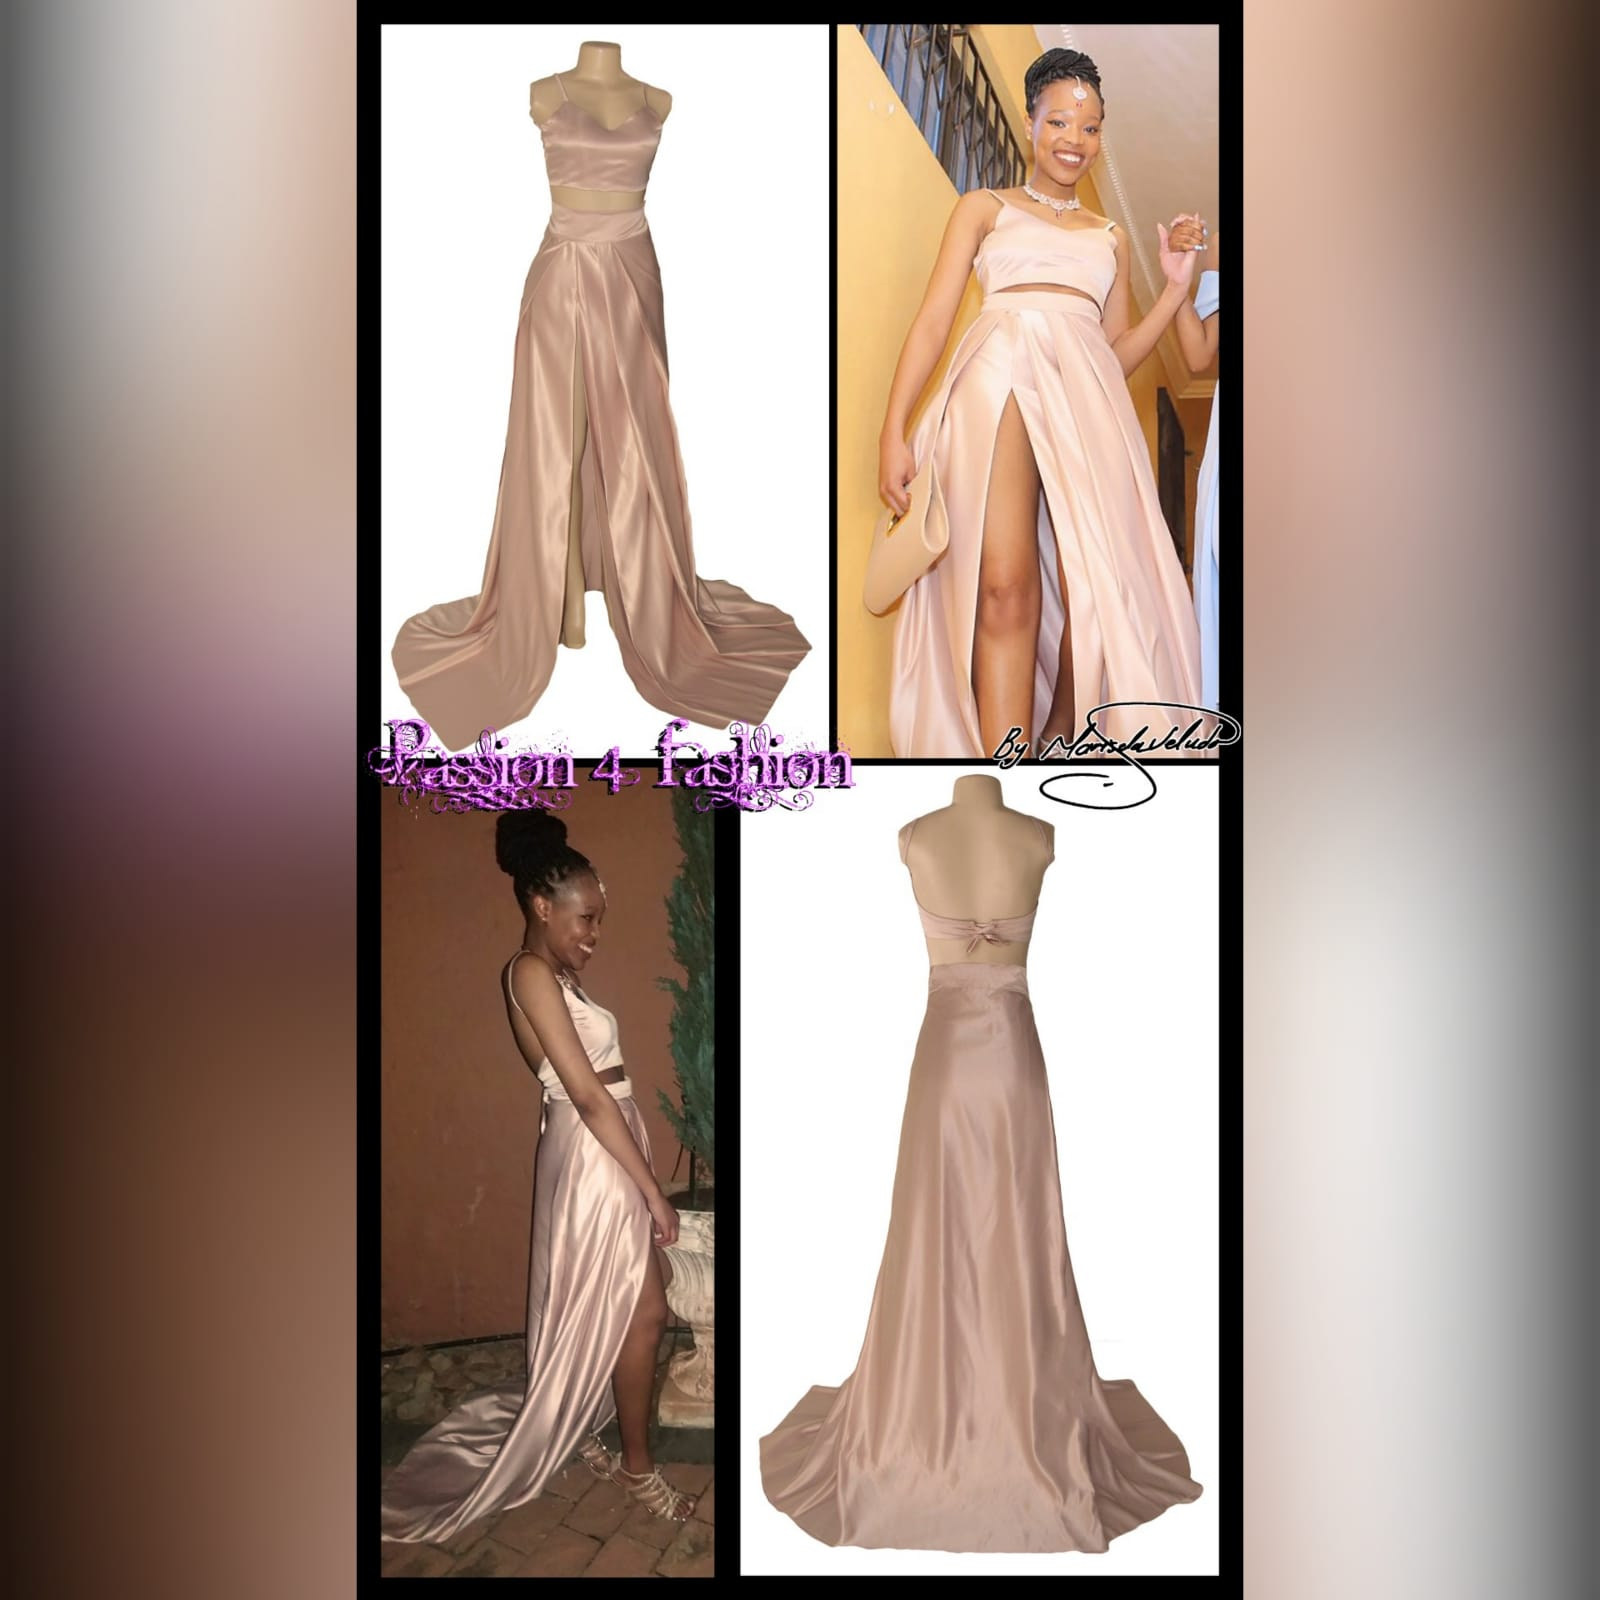 2 piece rose gold satin prom dress 6 2 piece rose gold satin prom dress, with a crop top, thin shoulder straps and a lace-up back. Pleated skirt with a high slit and a train.